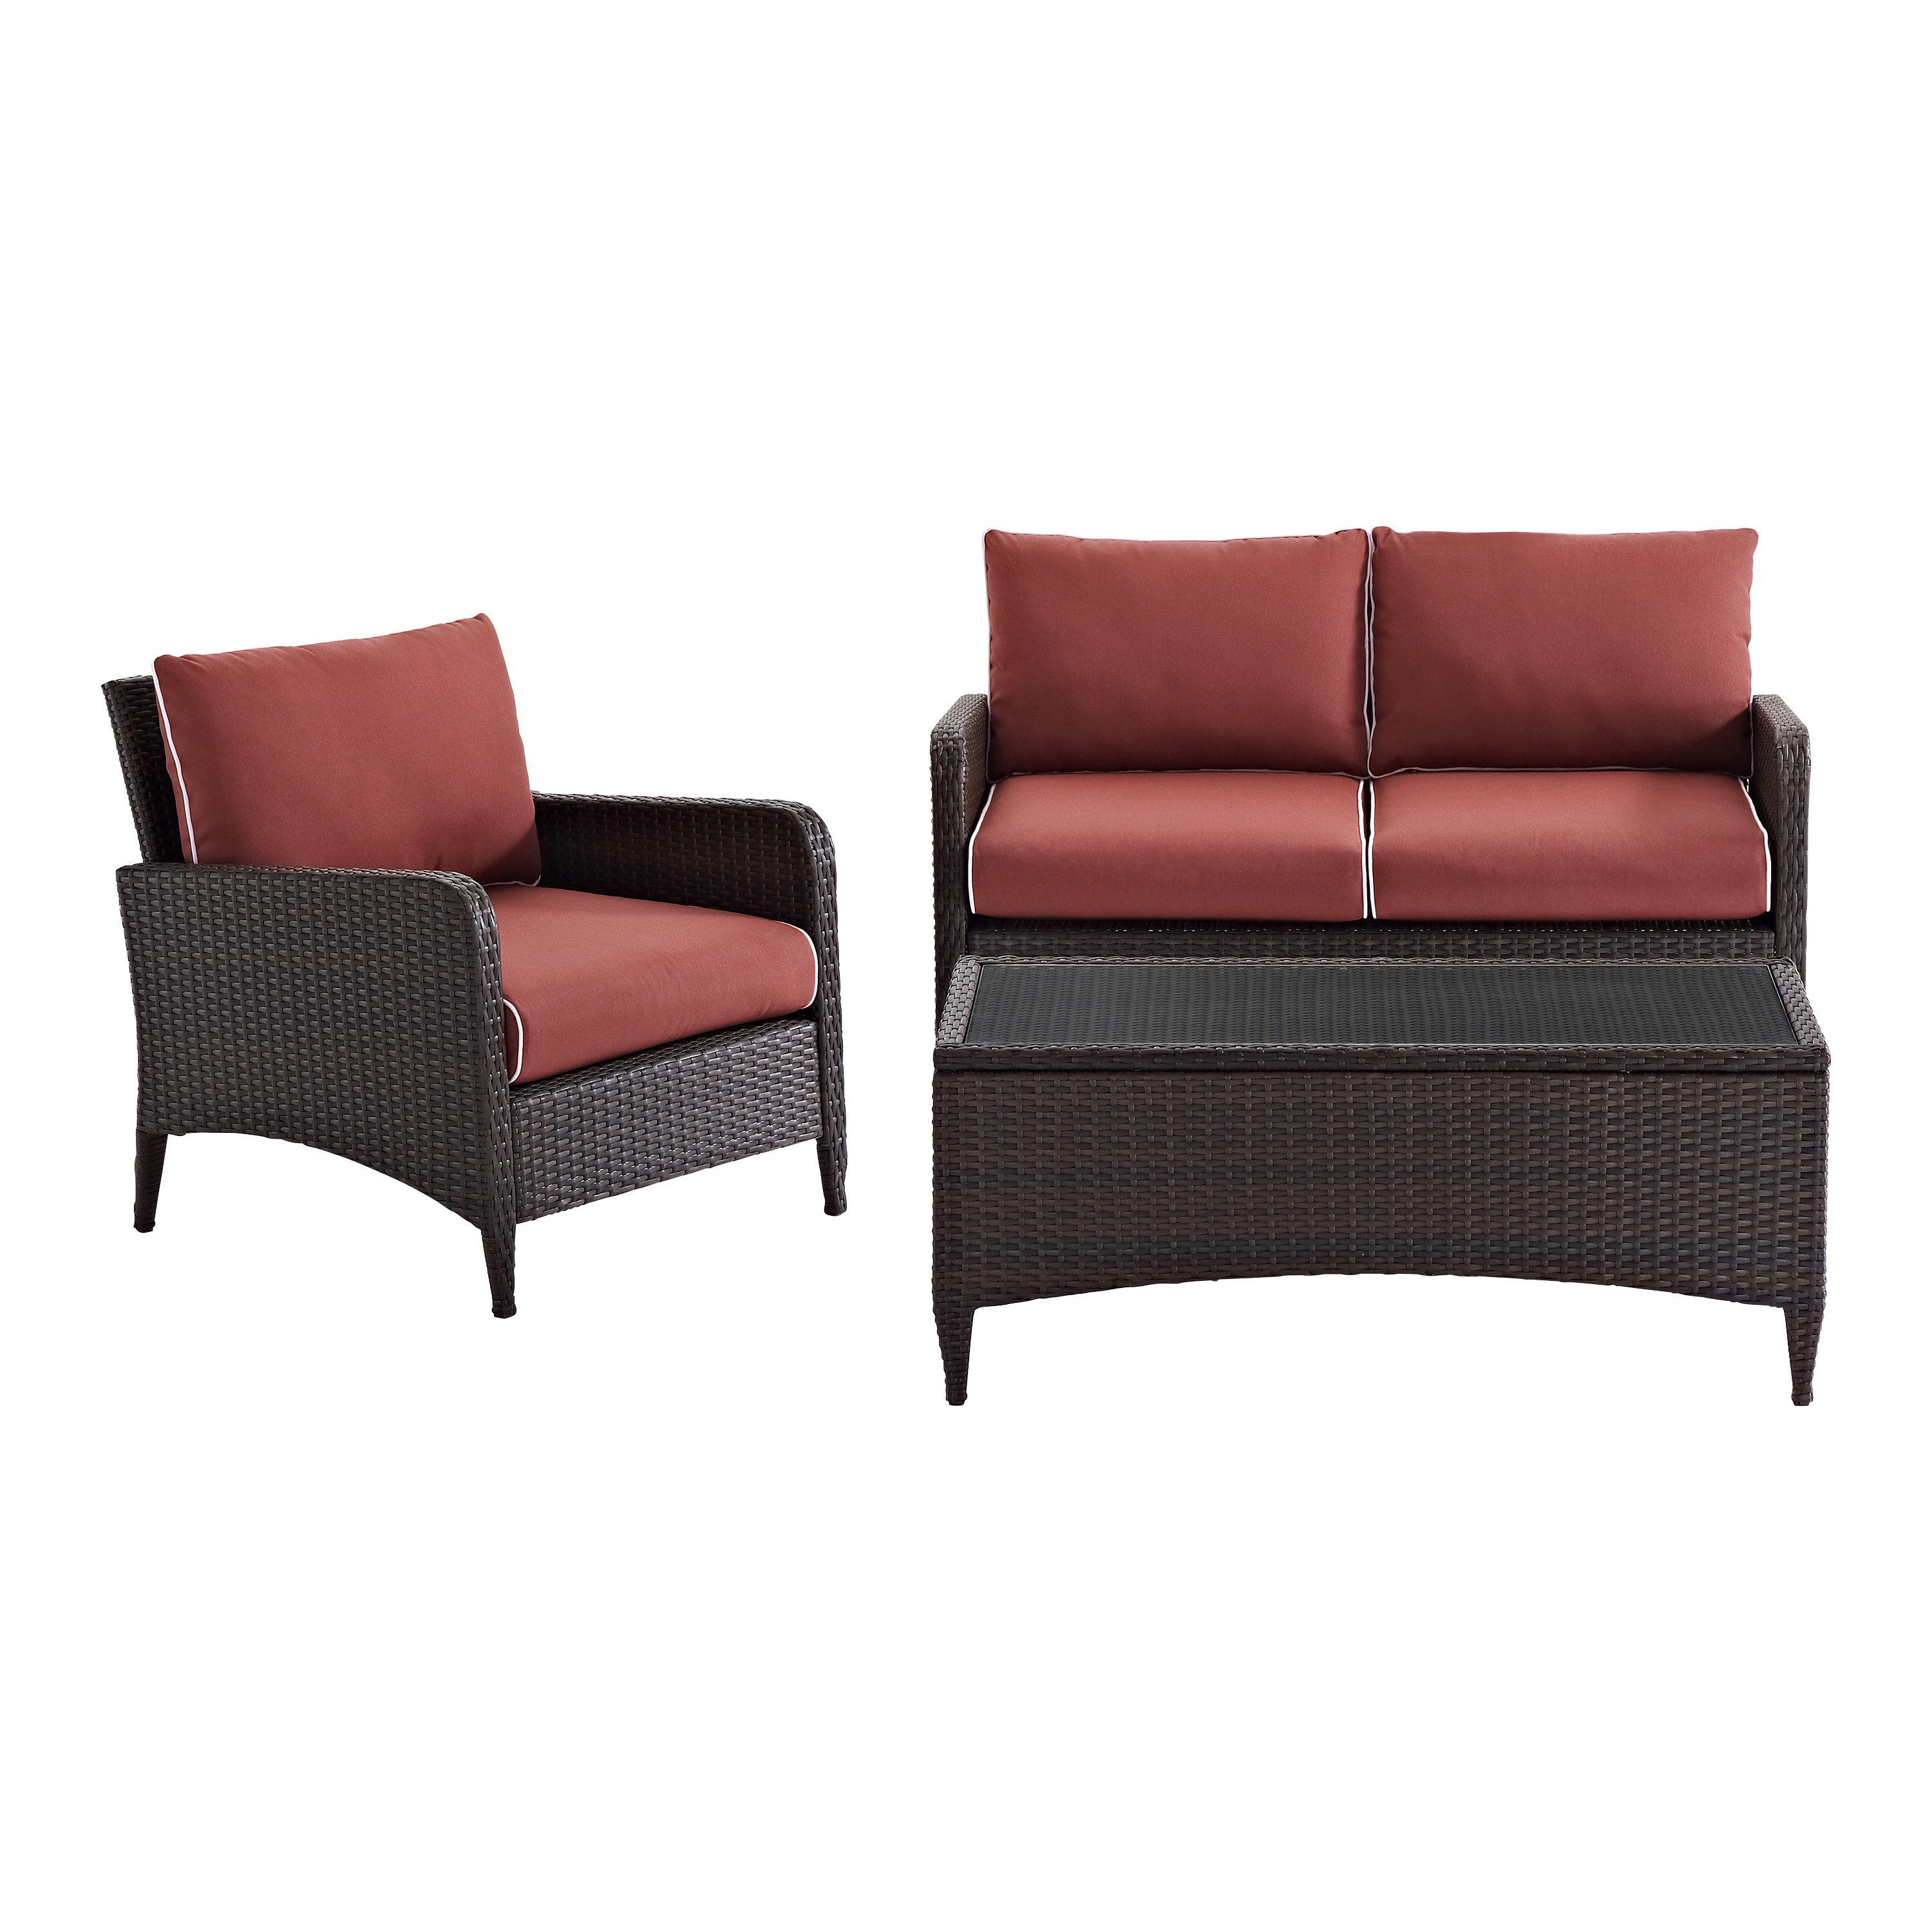 Most Recent Mosca 3 Piece Sofa Set With Cushions Throughout Mosca Patio Loveseats With Cushions (View 15 of 20)